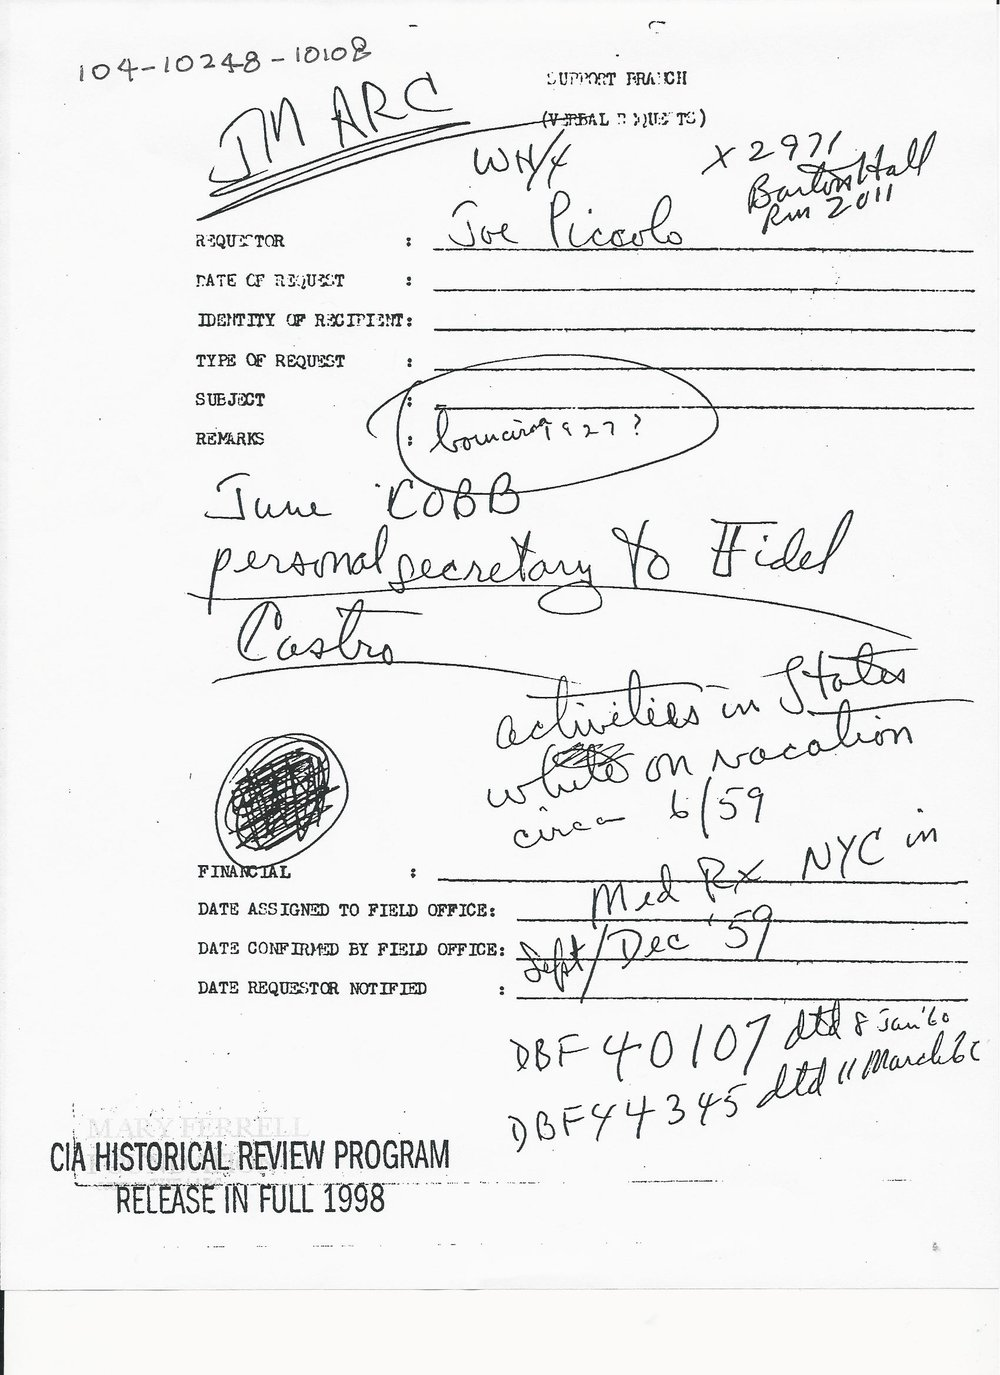 image 7.jpeg [Piccolo memo re Cobb summer 1960 travel to U.S.].jpg